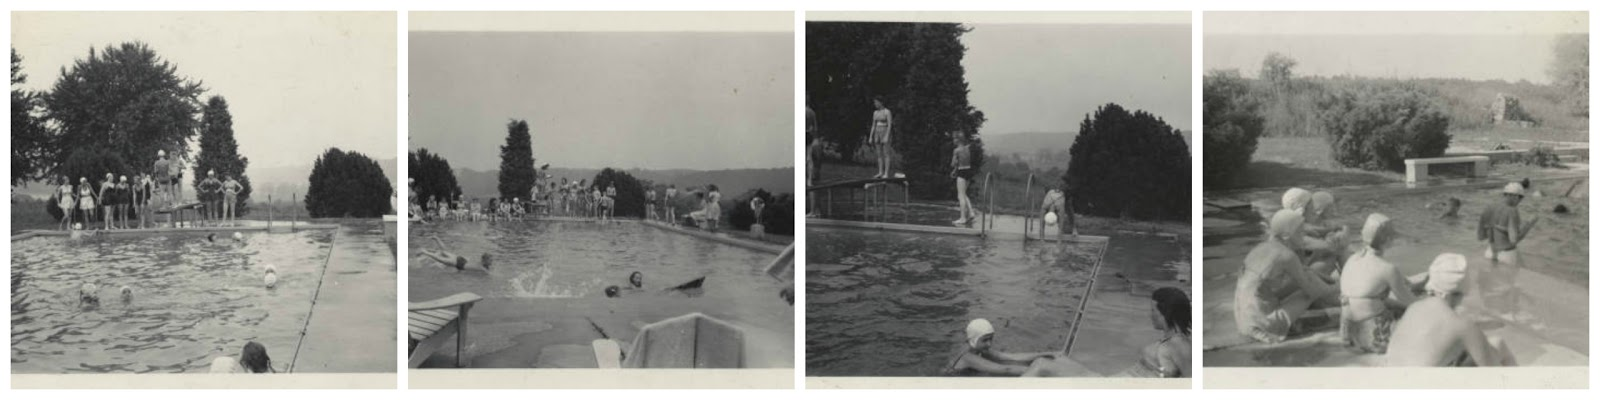 Swimming At The Lamotte Pool Educated Guesses Towson University Special Collections And